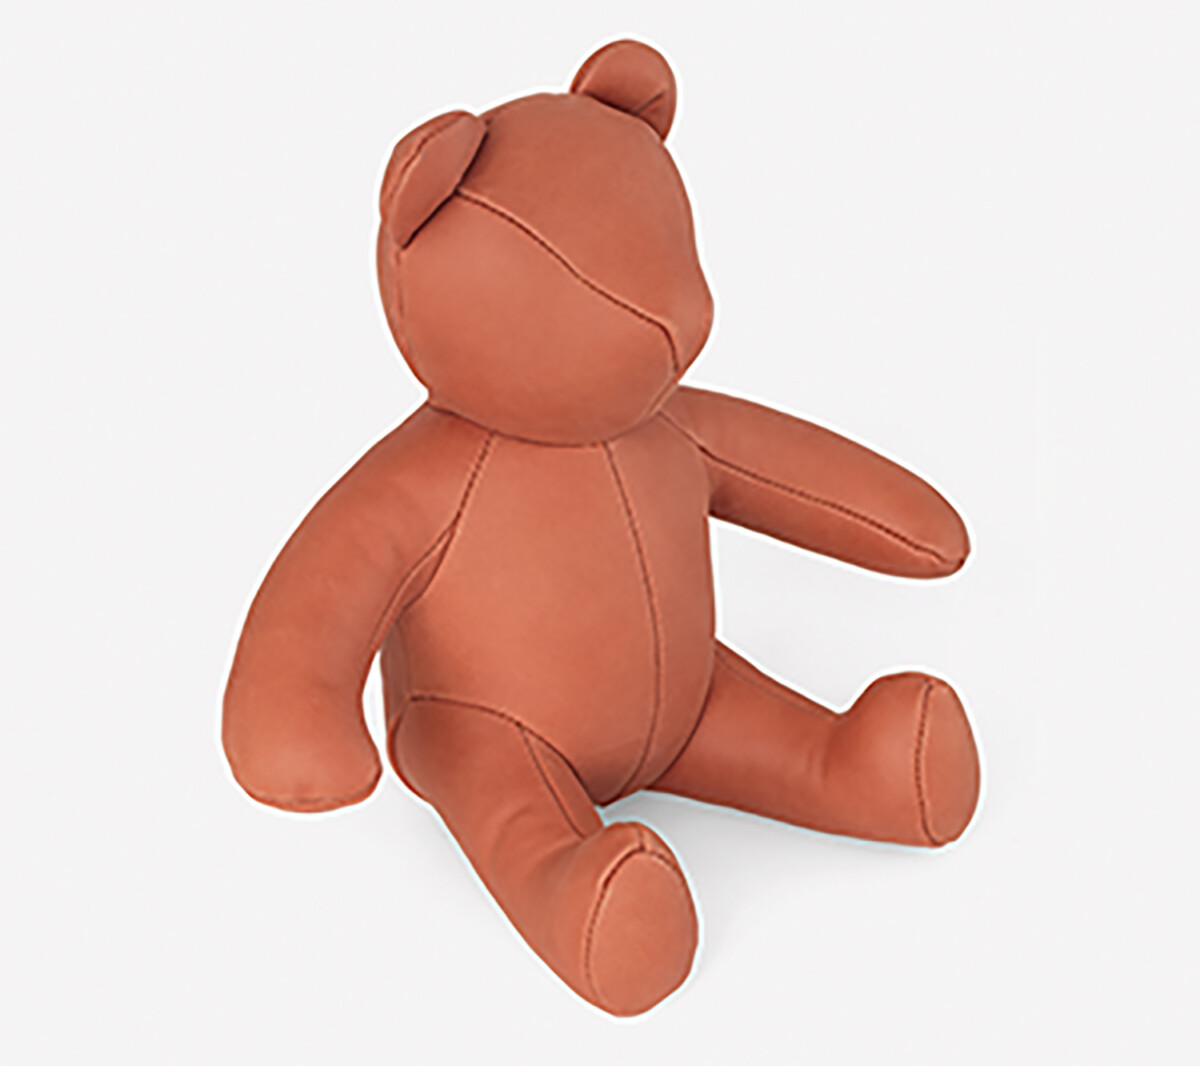 Colorful Home Decor and Accessories for 2021: color orange. Orange leather stuffed toy bear